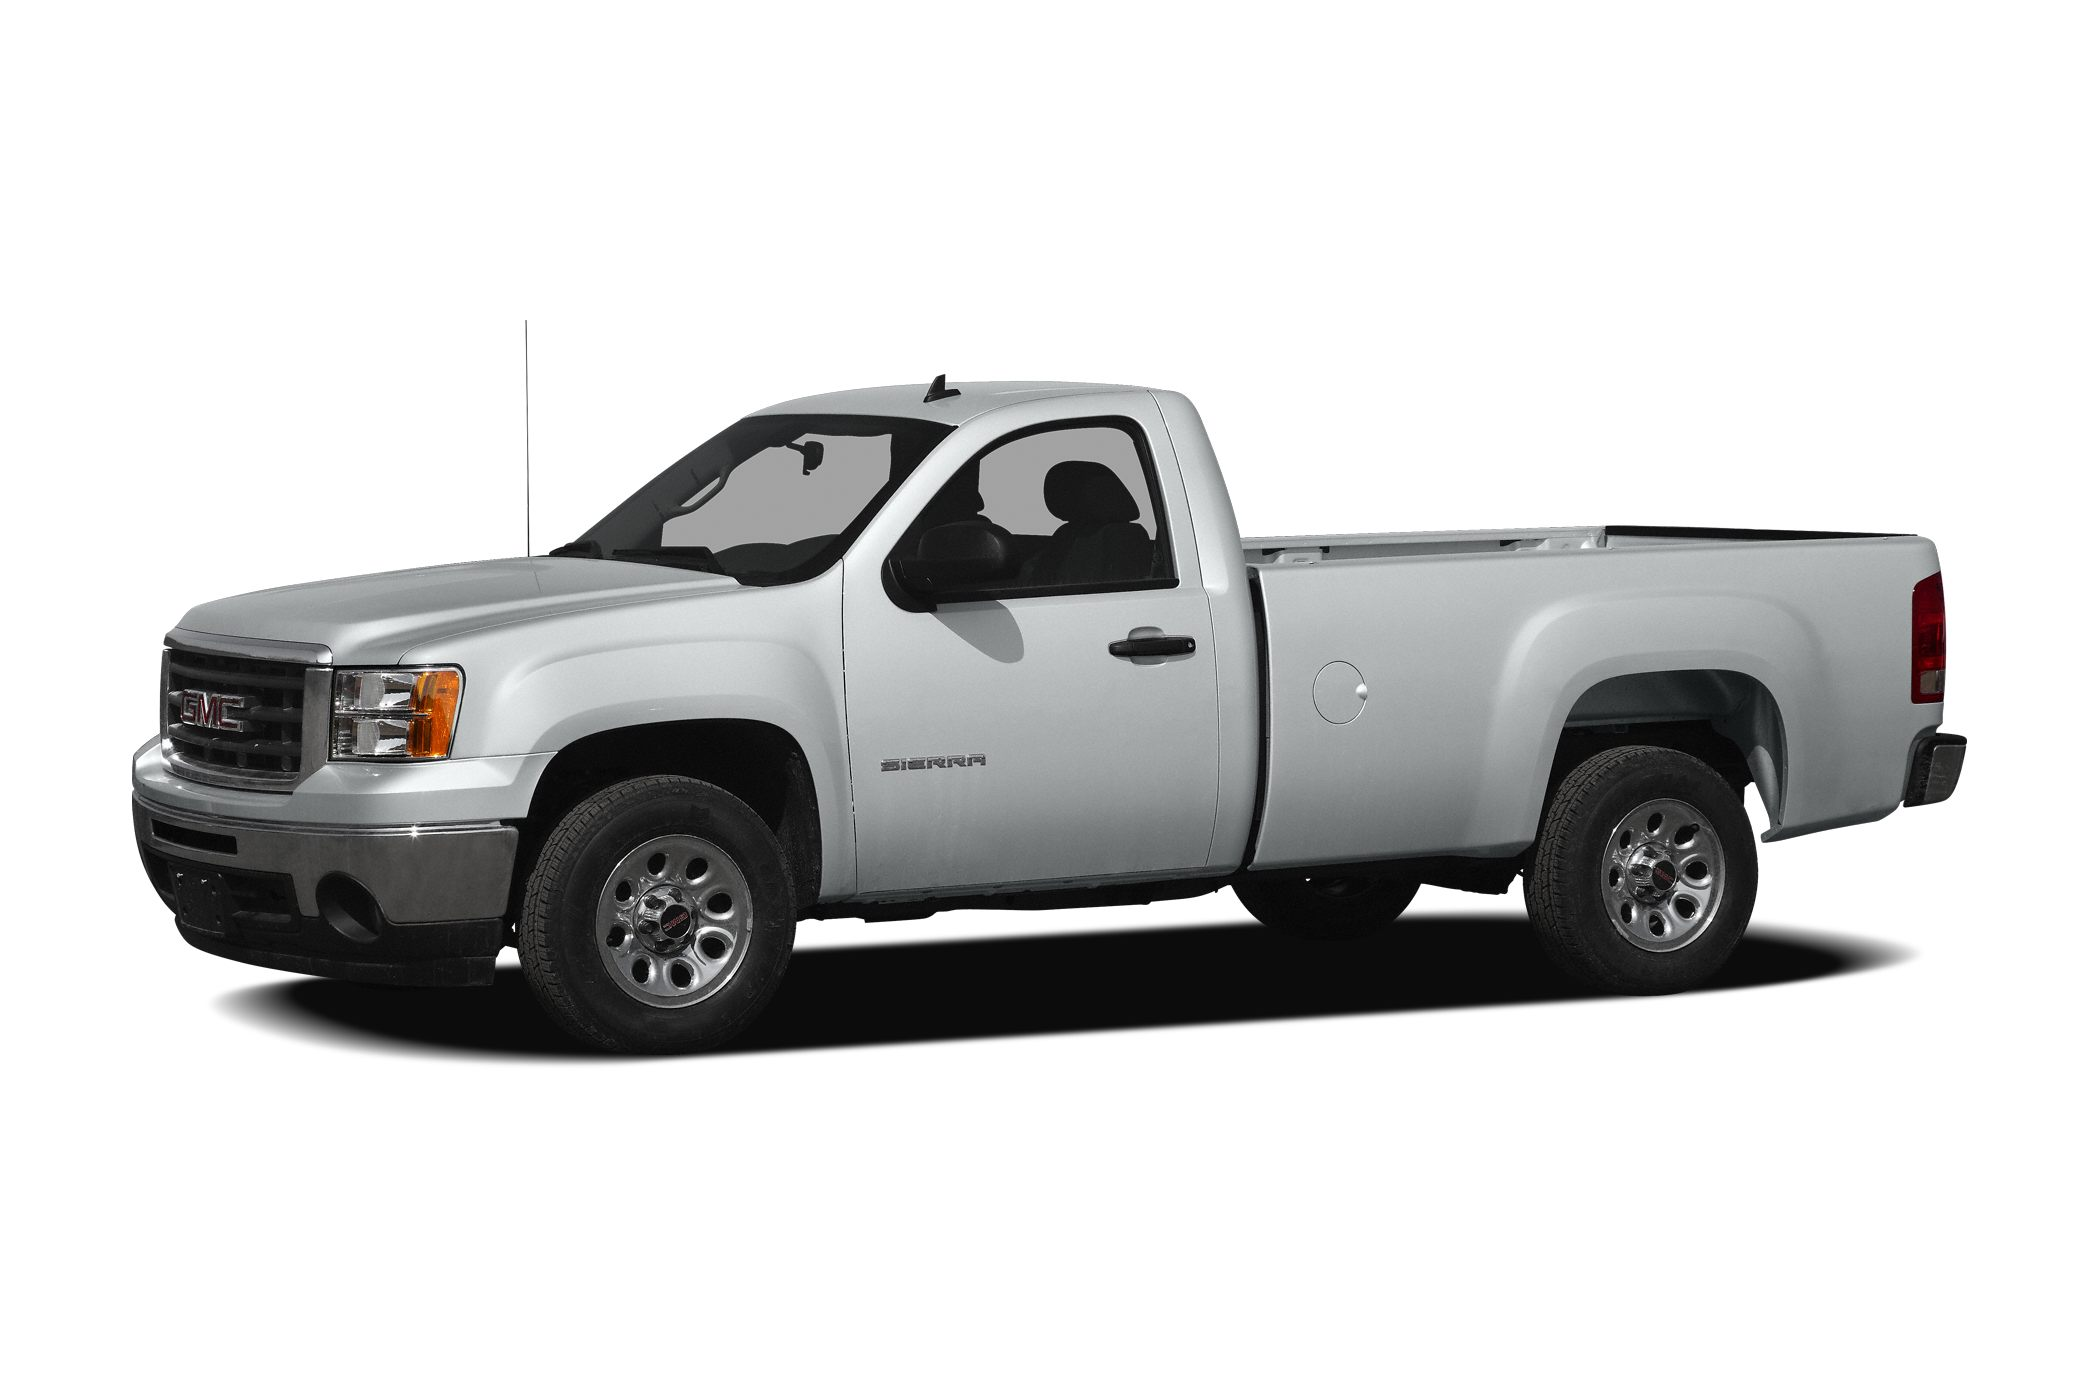 2010 GMC Sierra 1500 SLE Regular Cab Pickup for sale in Peoria for $19,950 with 32,617 miles